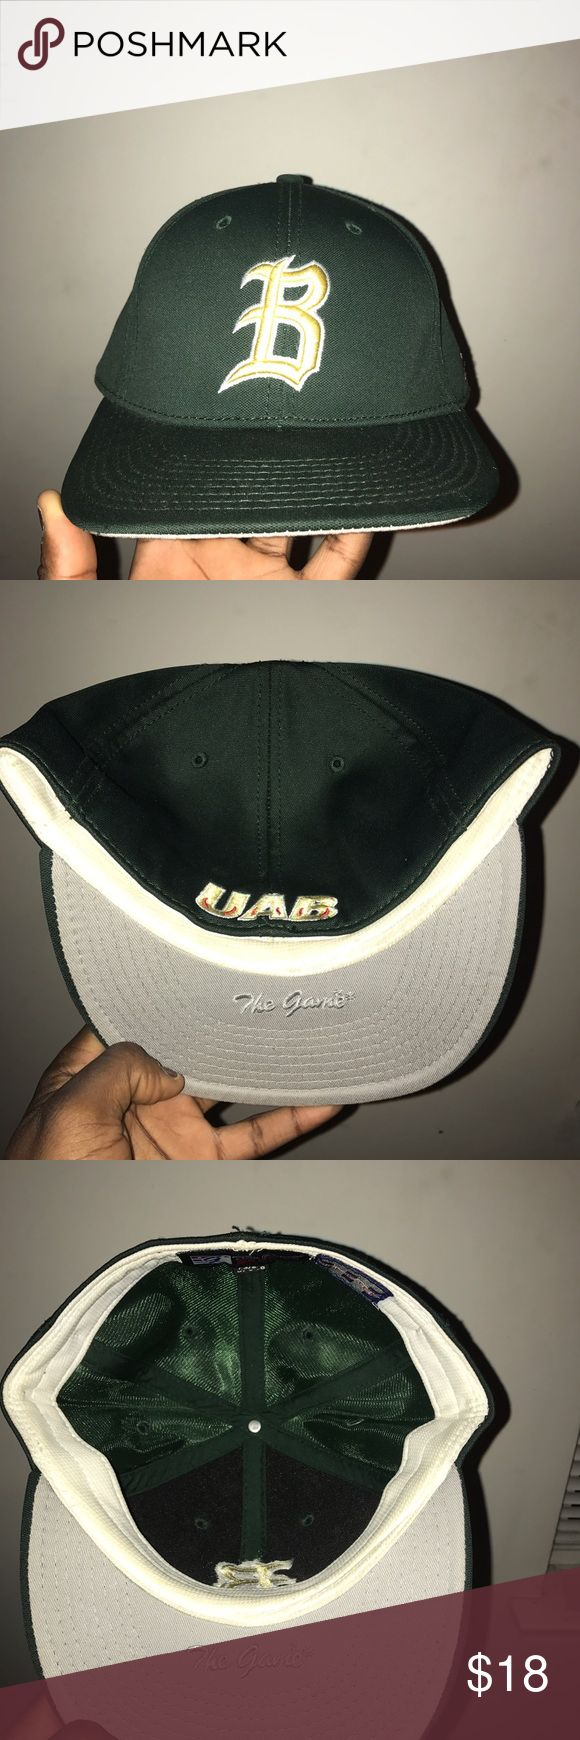 The Game Pro UAB Collage team cap The Game Pro UAB Collage team cap worn 2x The Game Pro Accessories Hats